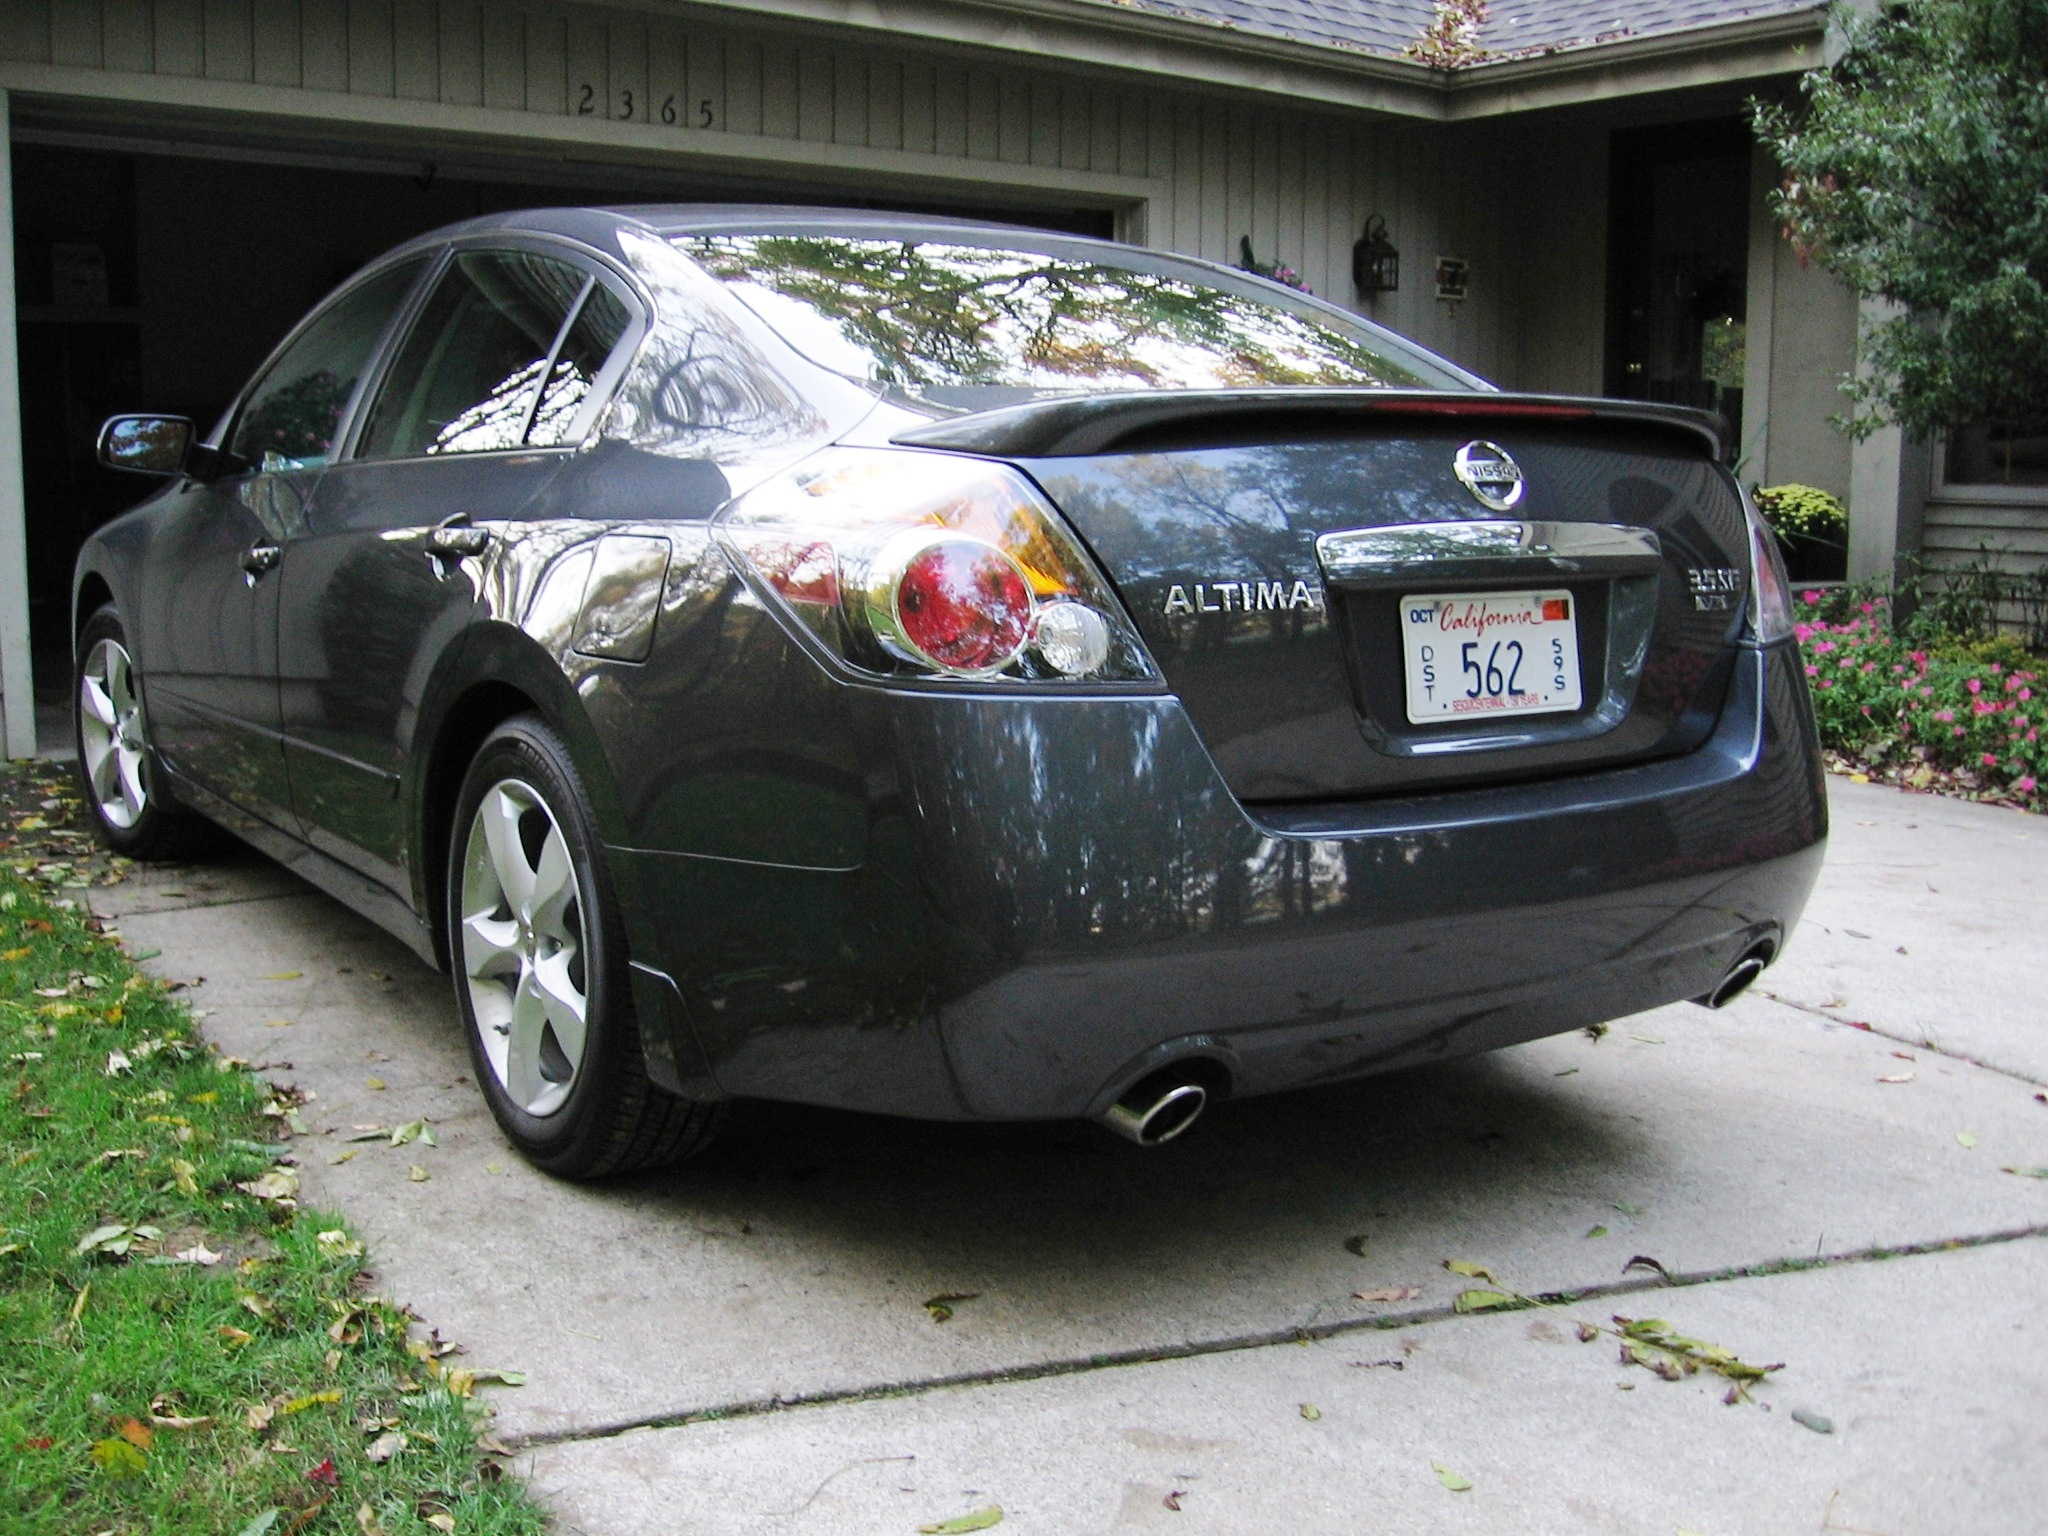 2008 nissan altima information and photos zombiedrive rh zombdrive com 2008 Nissan Maxima 2008 Nissan Pathfinder